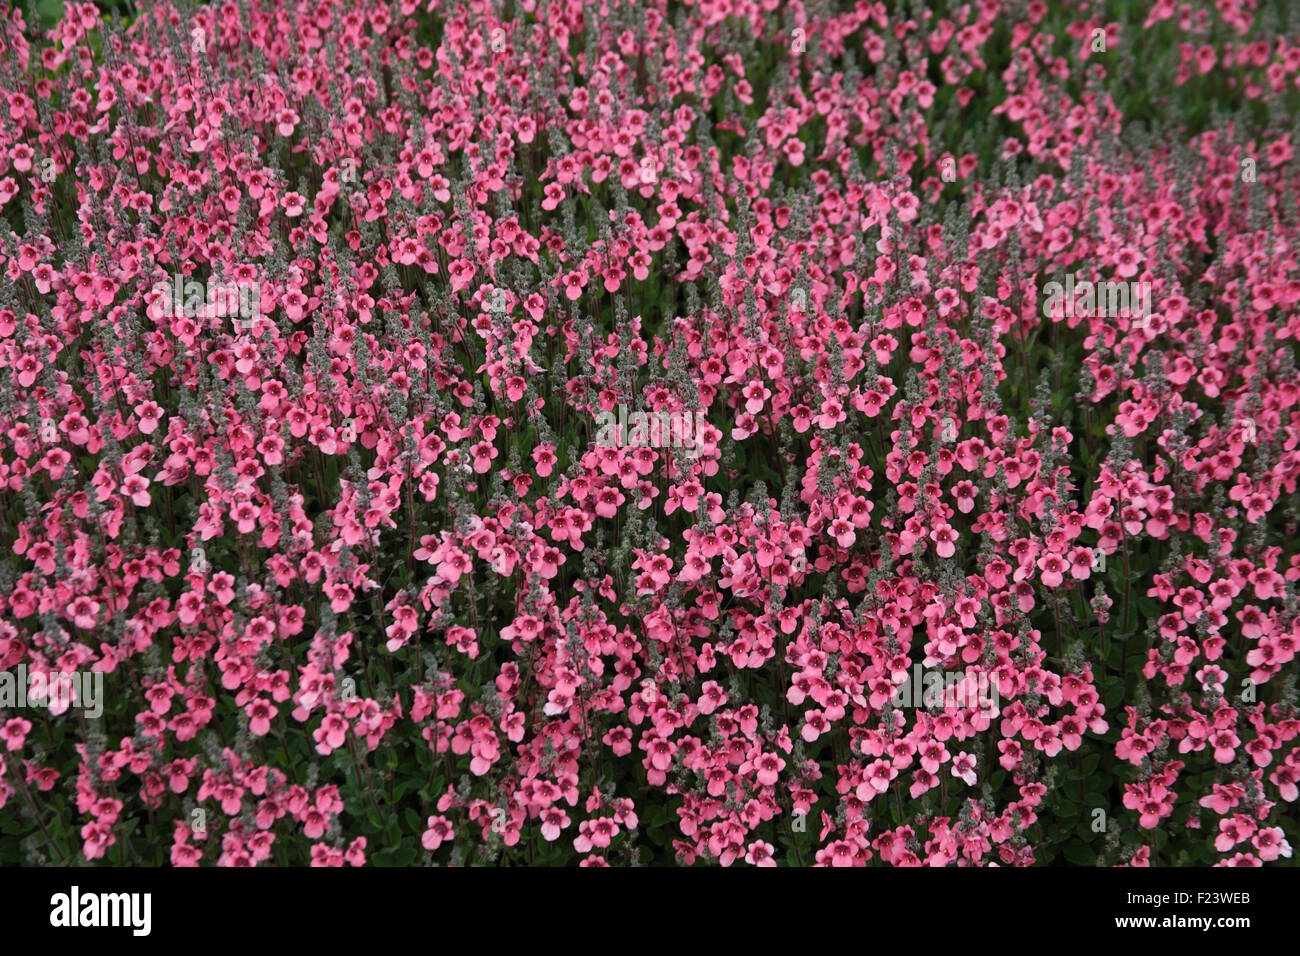 Diascia fetcaniensis 'Daydream' plants in flower - Stock Image